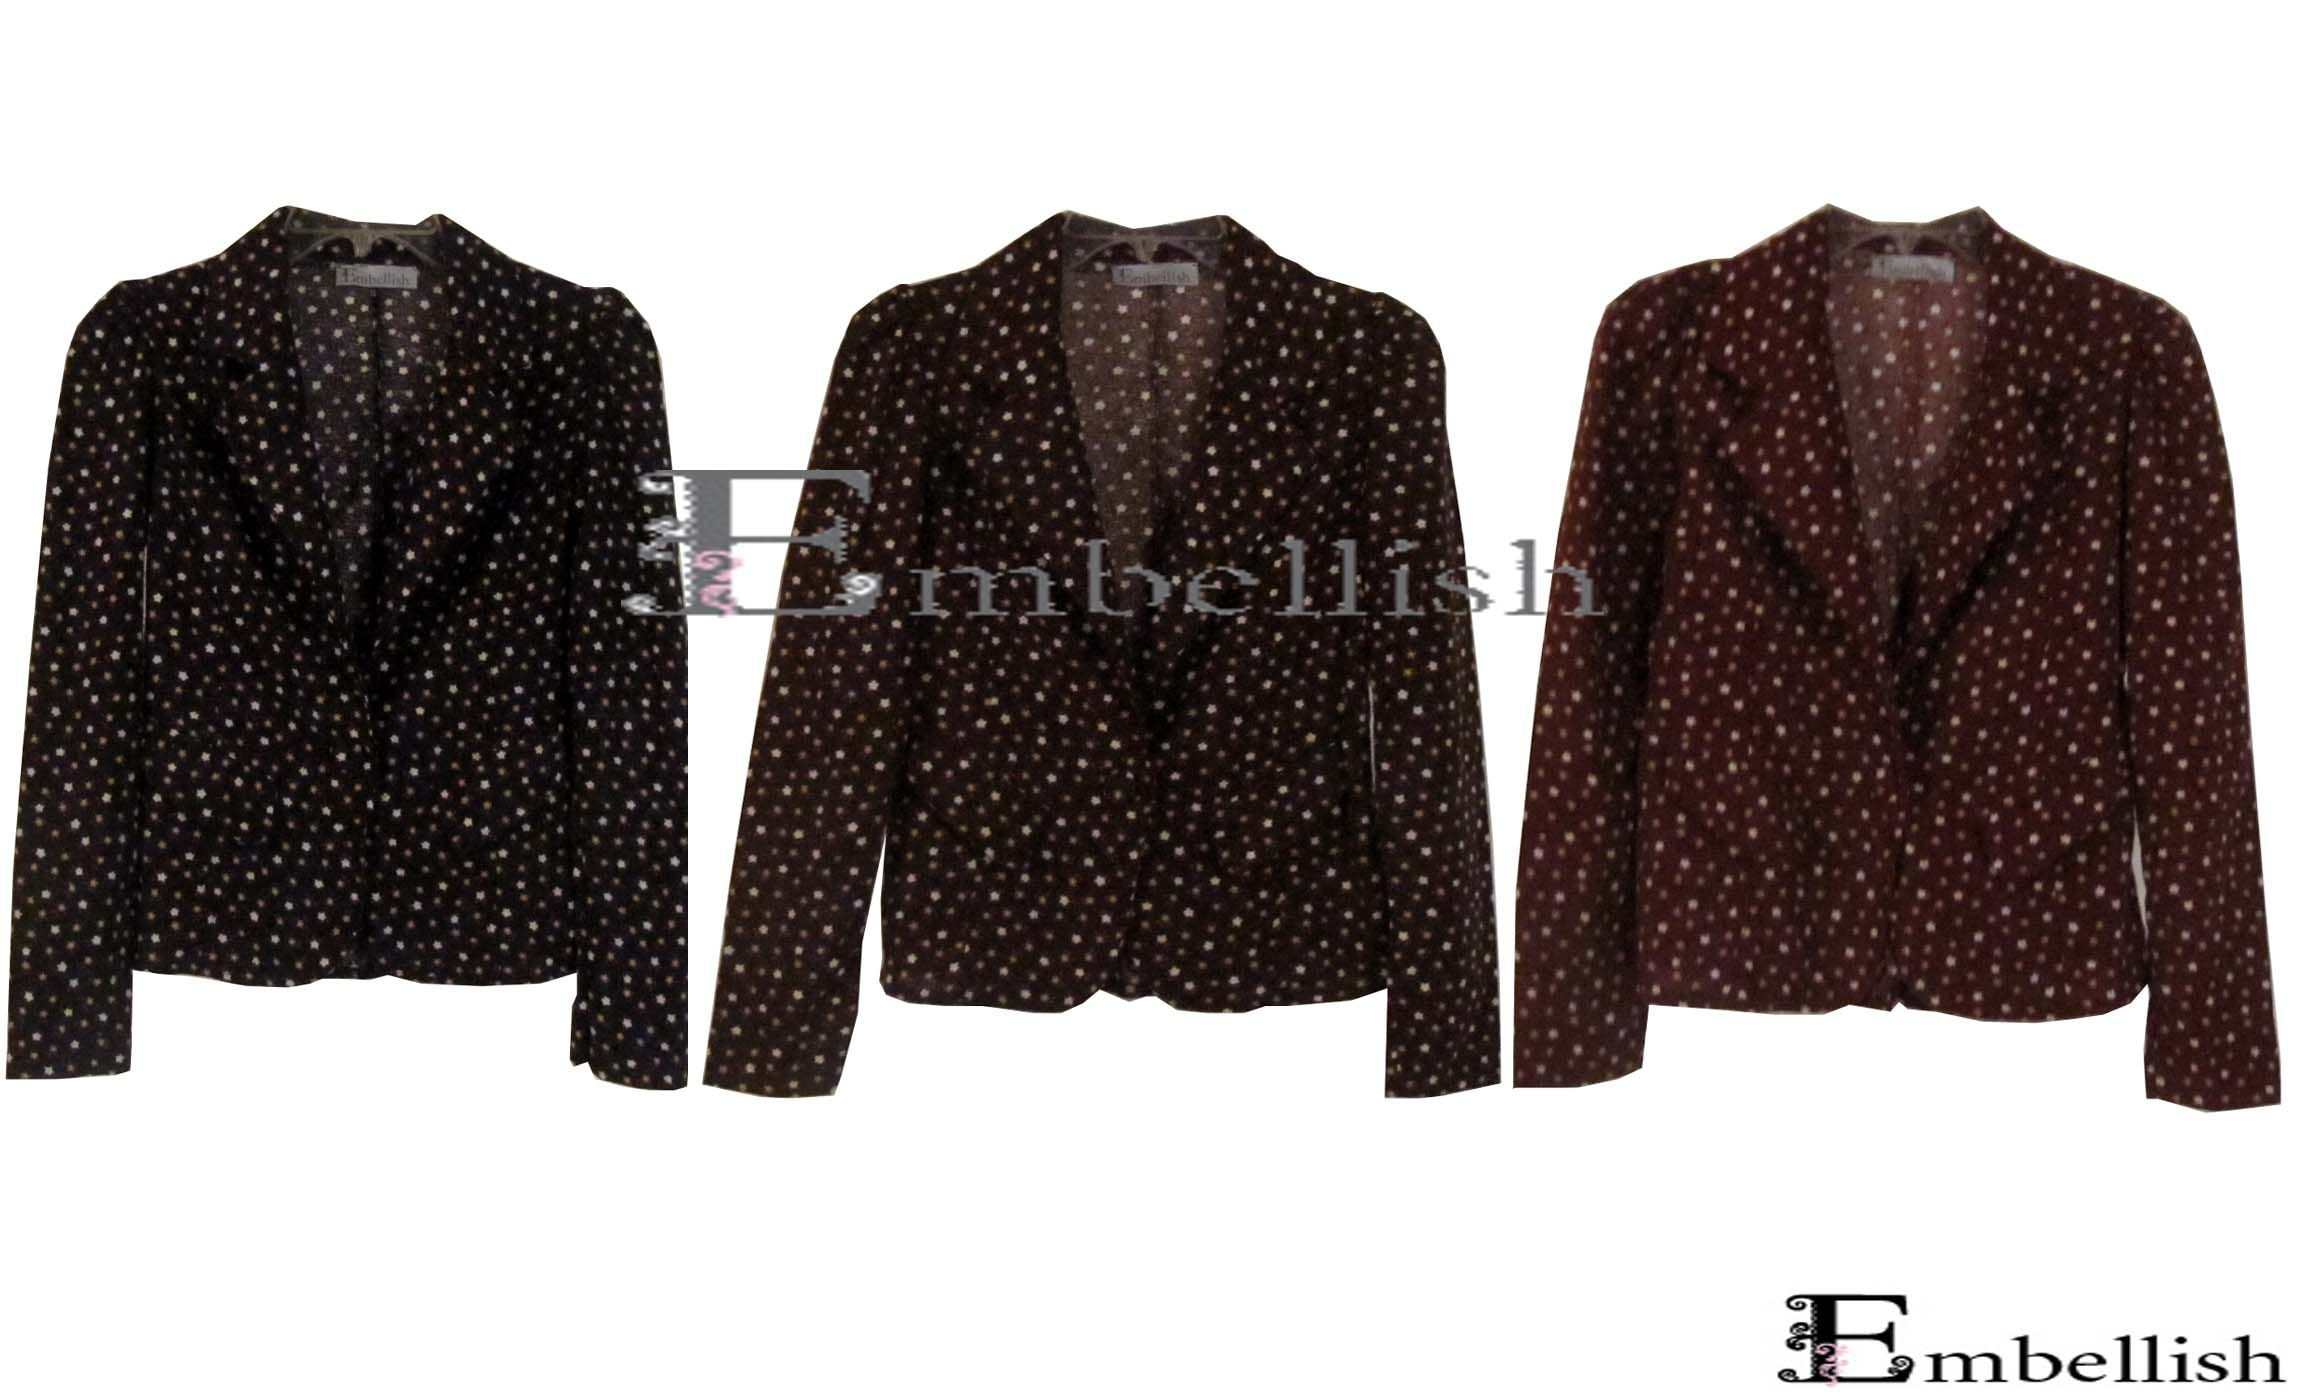 Php895 Bolivia Blazer (Black, Brown and Maroon)